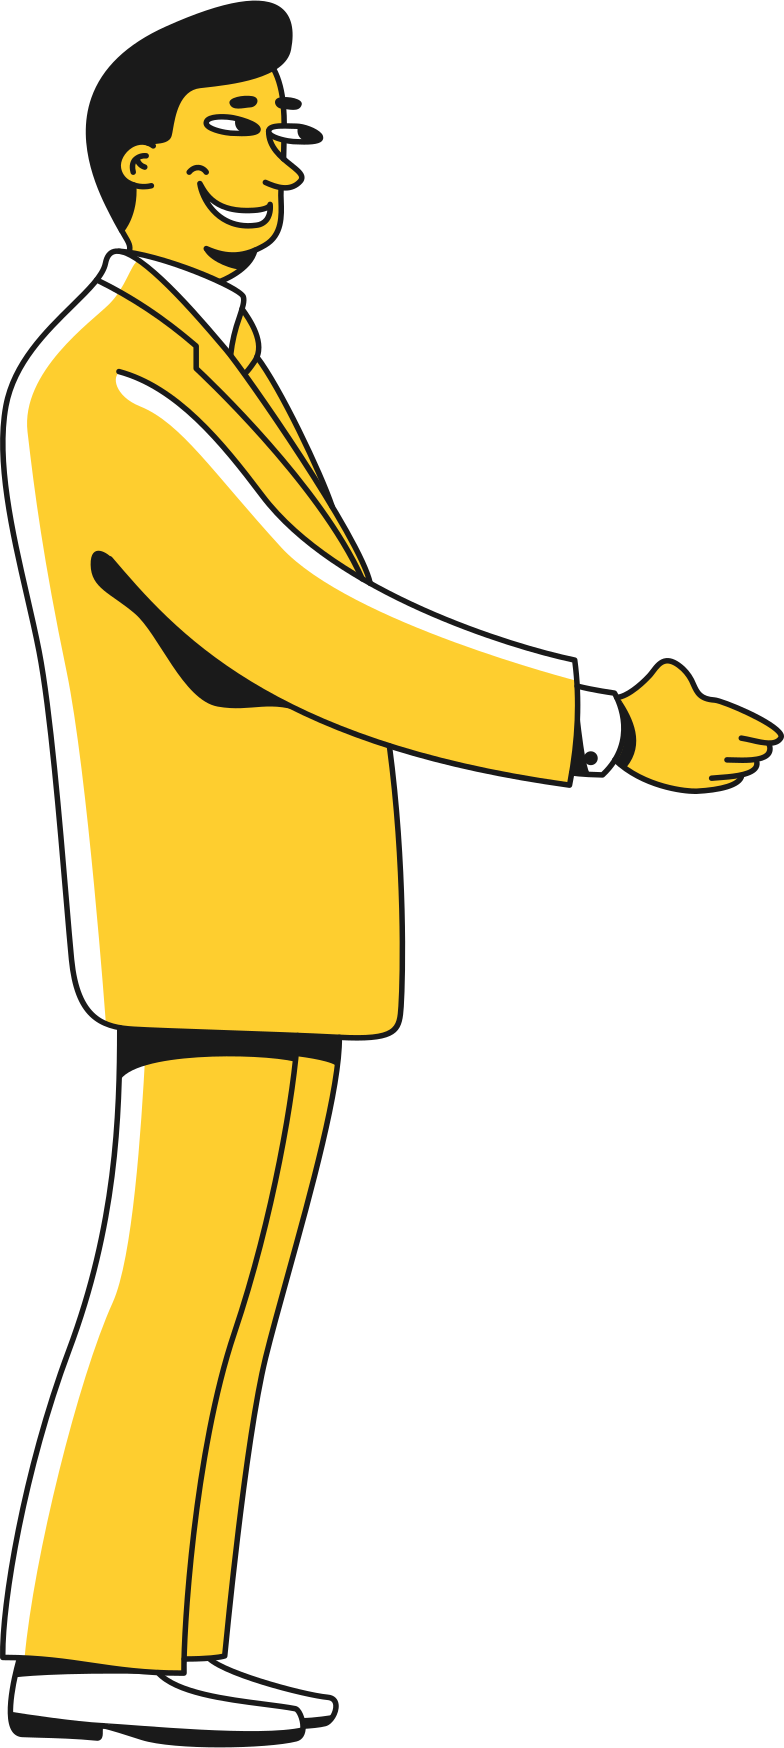 politician shaking hand Clipart illustration in PNG, SVG